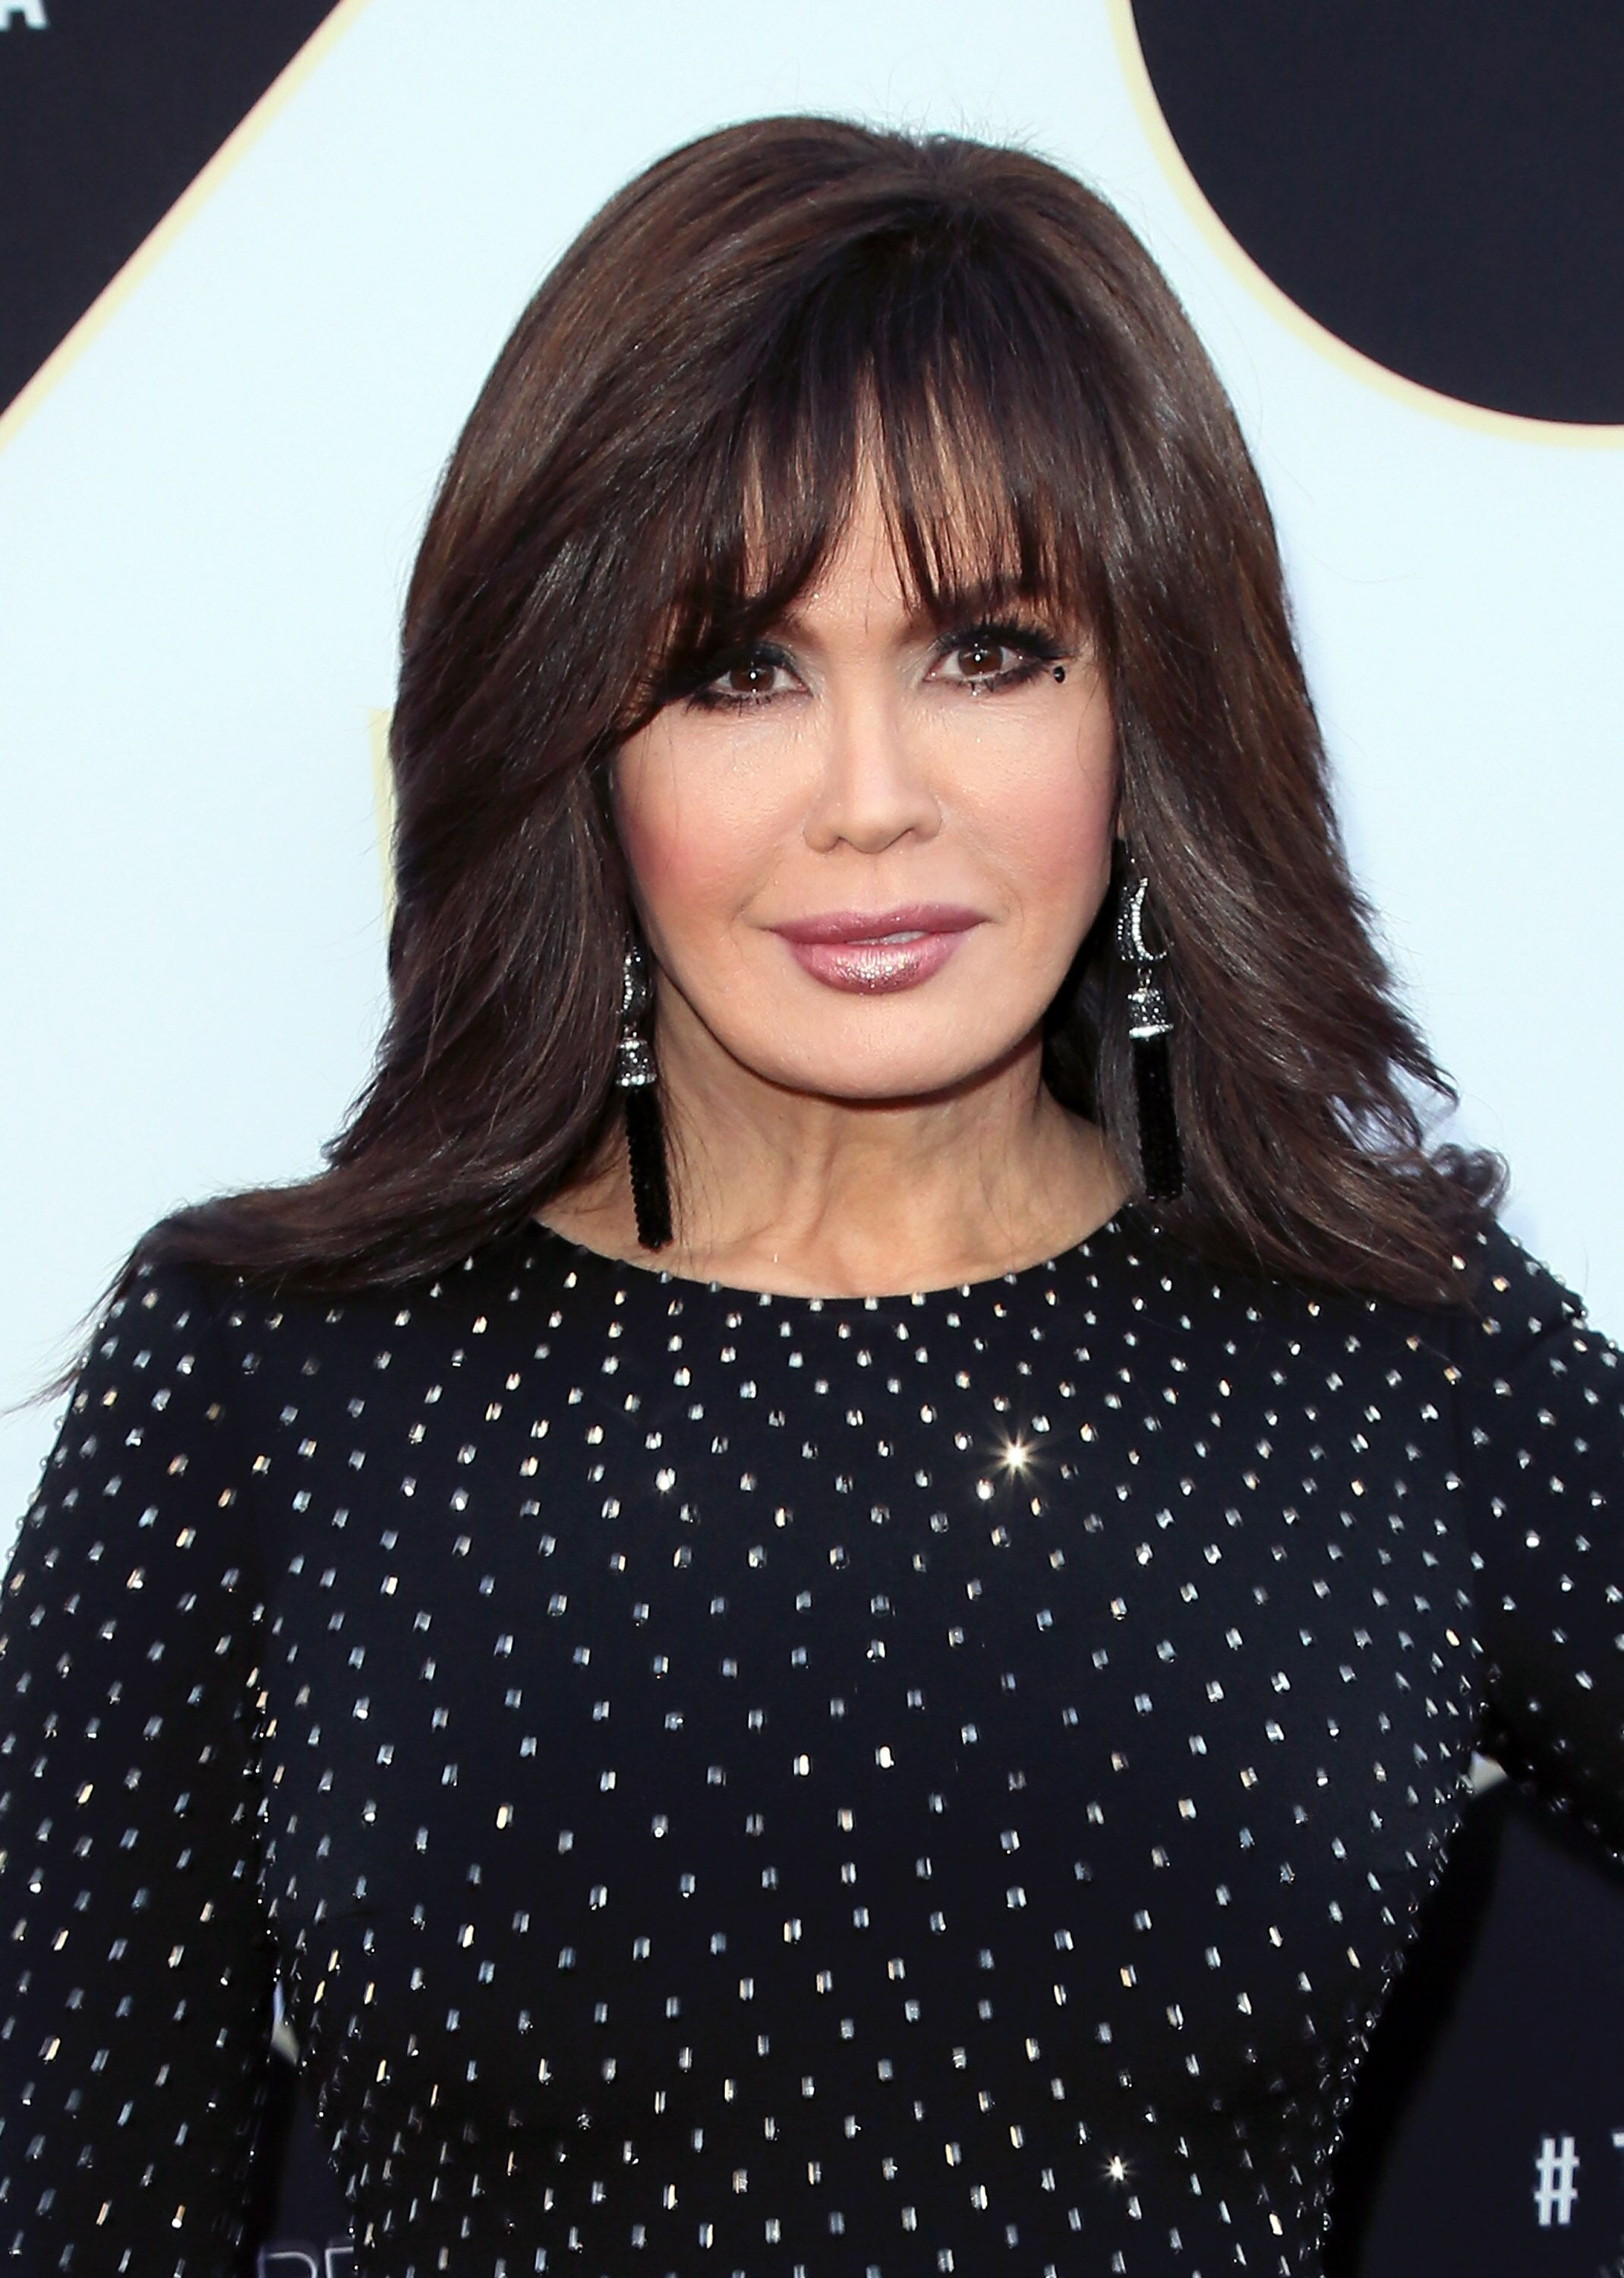 Singer Marie Osmond attends the 2015 TV Land Awards at the Saban Theatre | Getty Images / Global Images Ukraine